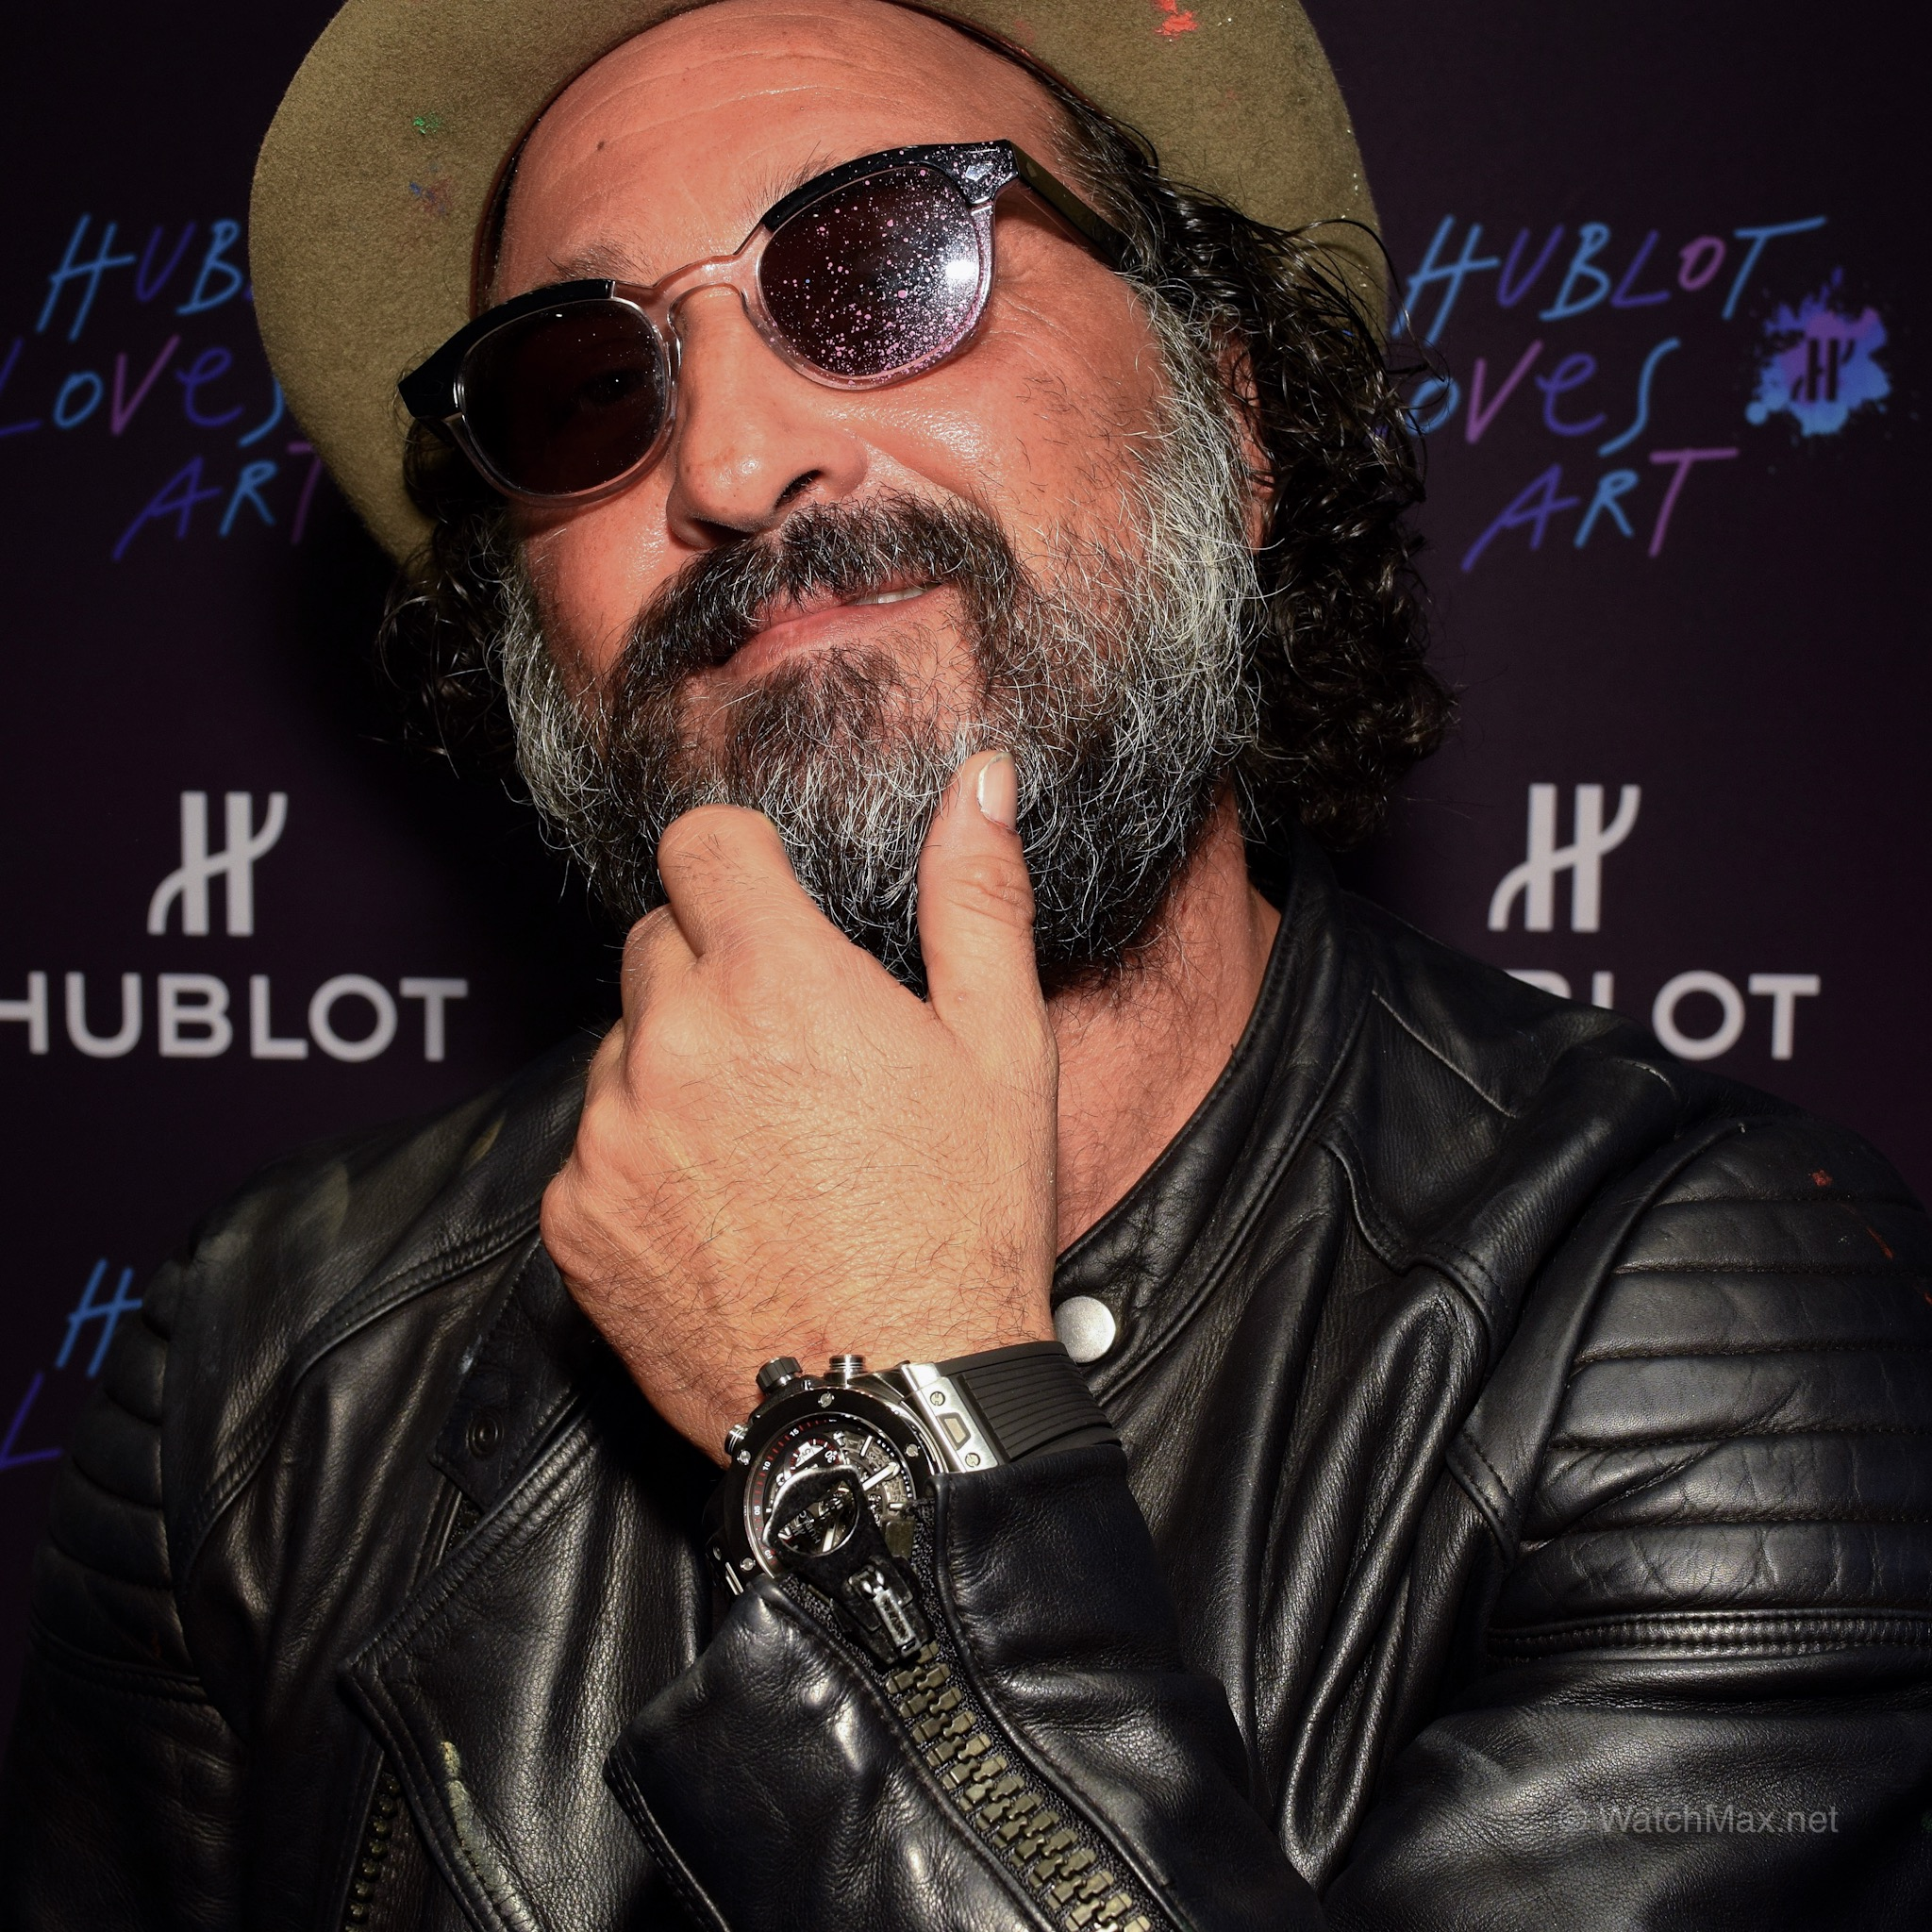 Hublot's collaboration with  Mr. Brainwash  during ArtBasel 2014